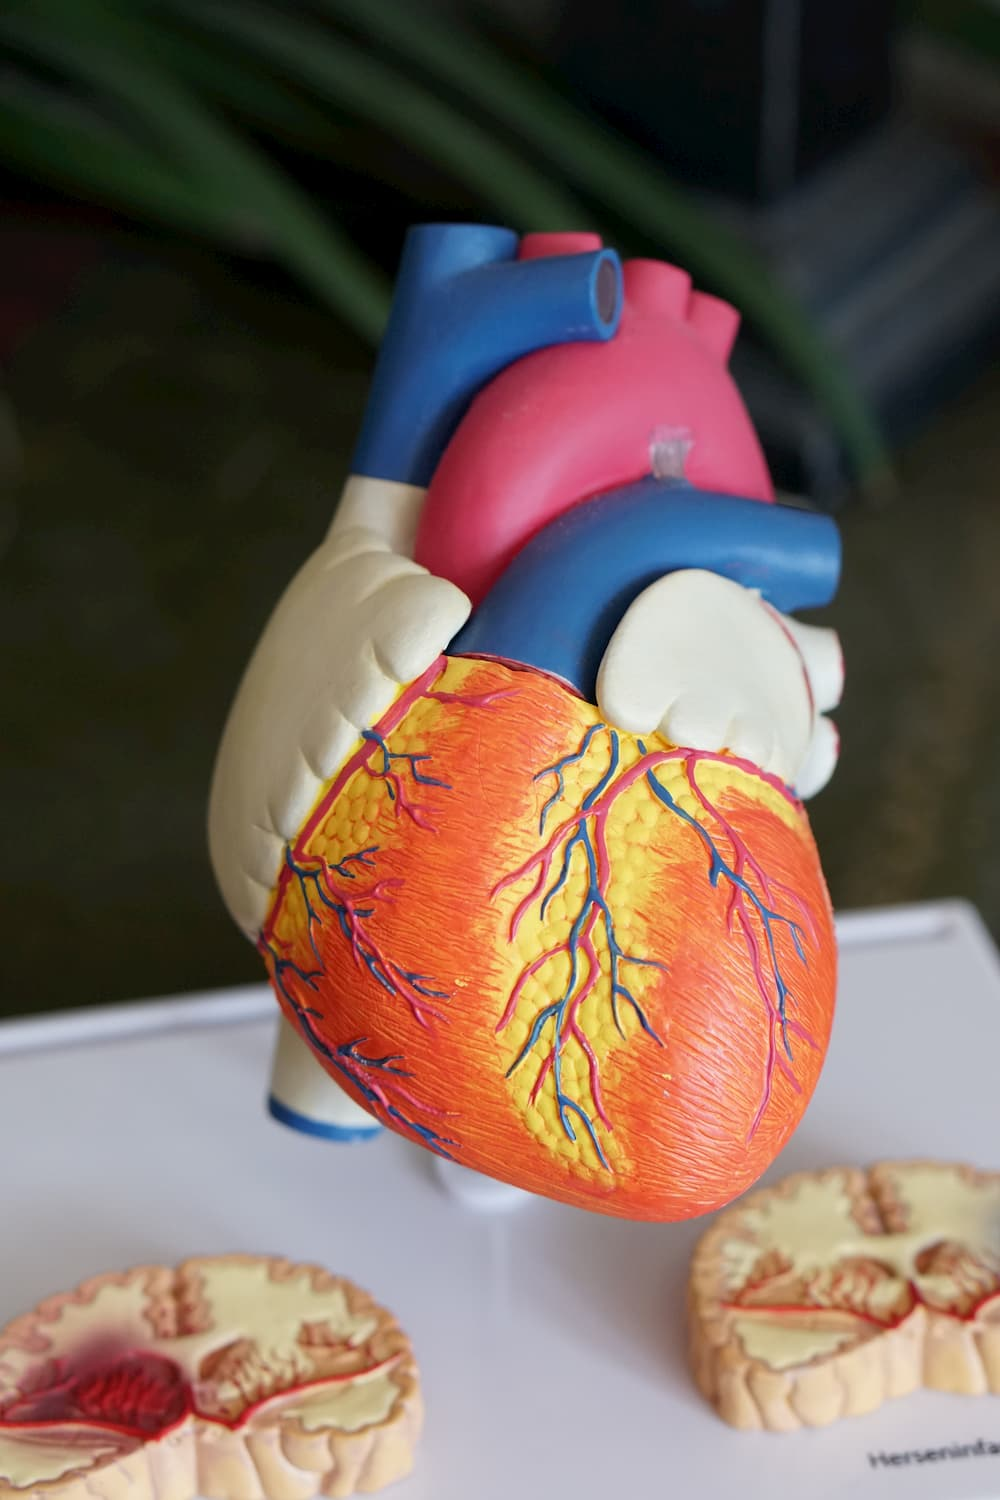 Image of a model of a human heart